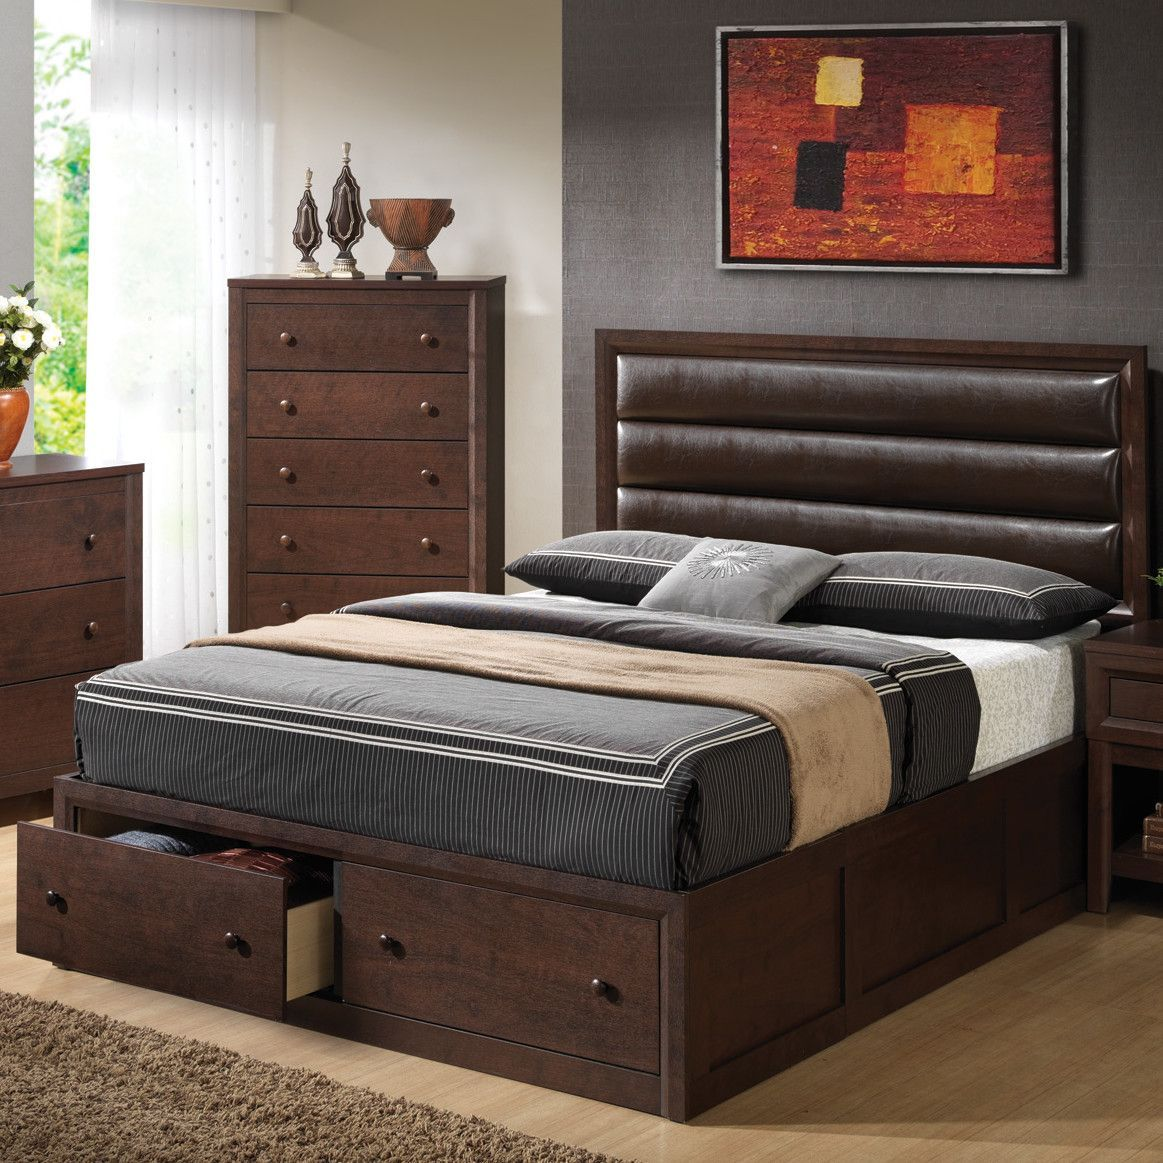 drawer chest products pinterest products